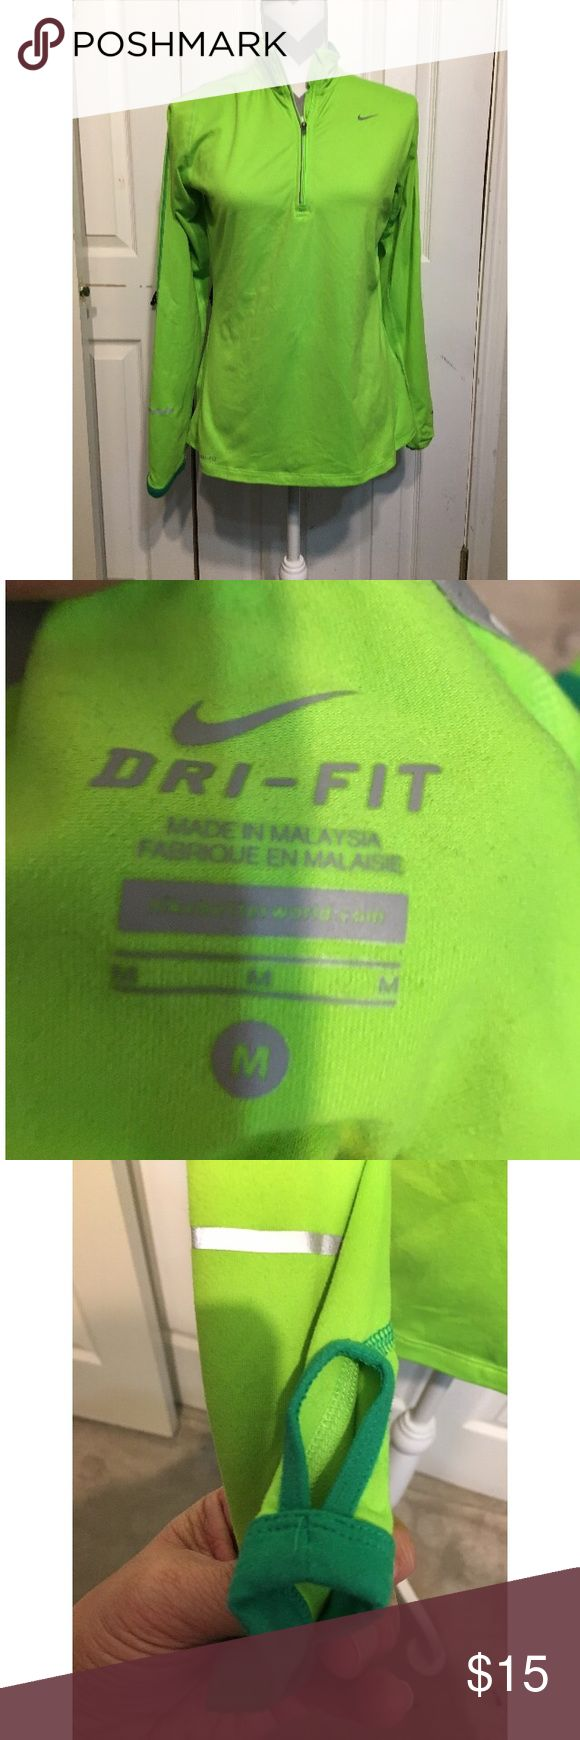 Nike Pro Dri-Fit Women's Running Jacket Nike Pro Dri-Fit Women's Running Top - thumb holes wth some stretch - fluorescent green - some minor pilling - Good Condition - medium Nike Jackets & Coats